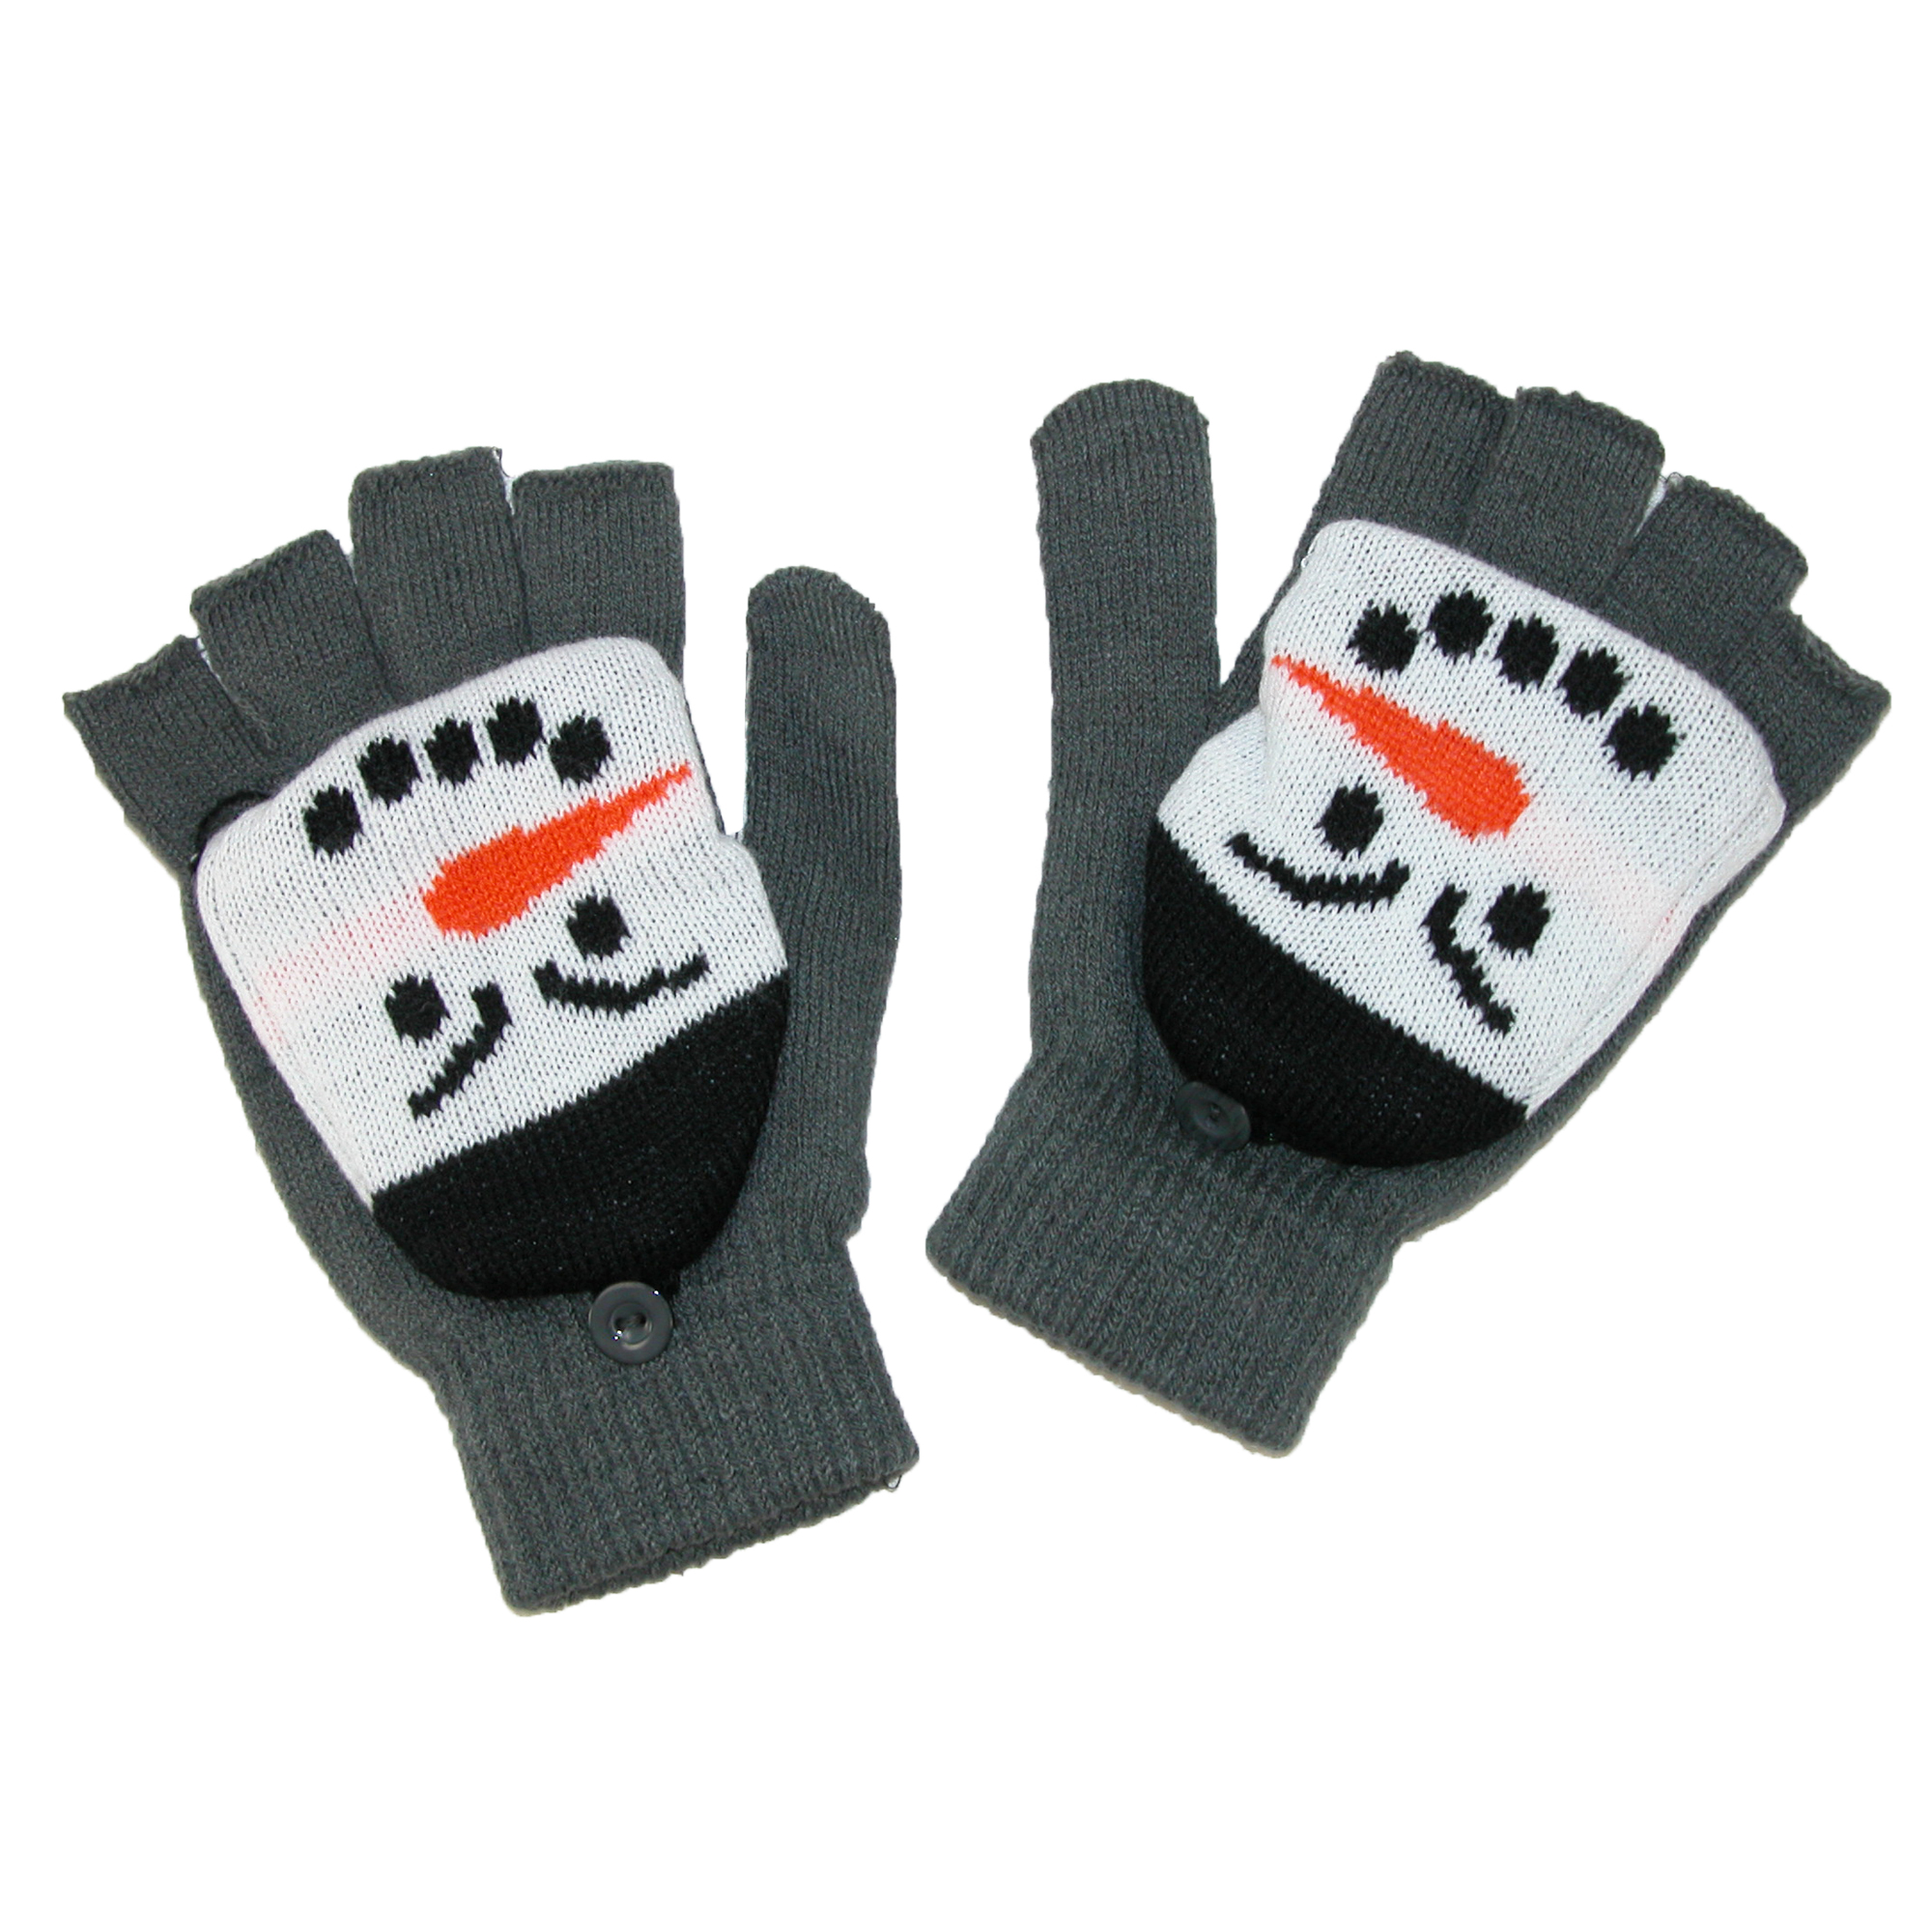 Aquarius  Kids' Snowman Mittens Convertible Fingerless Gloves